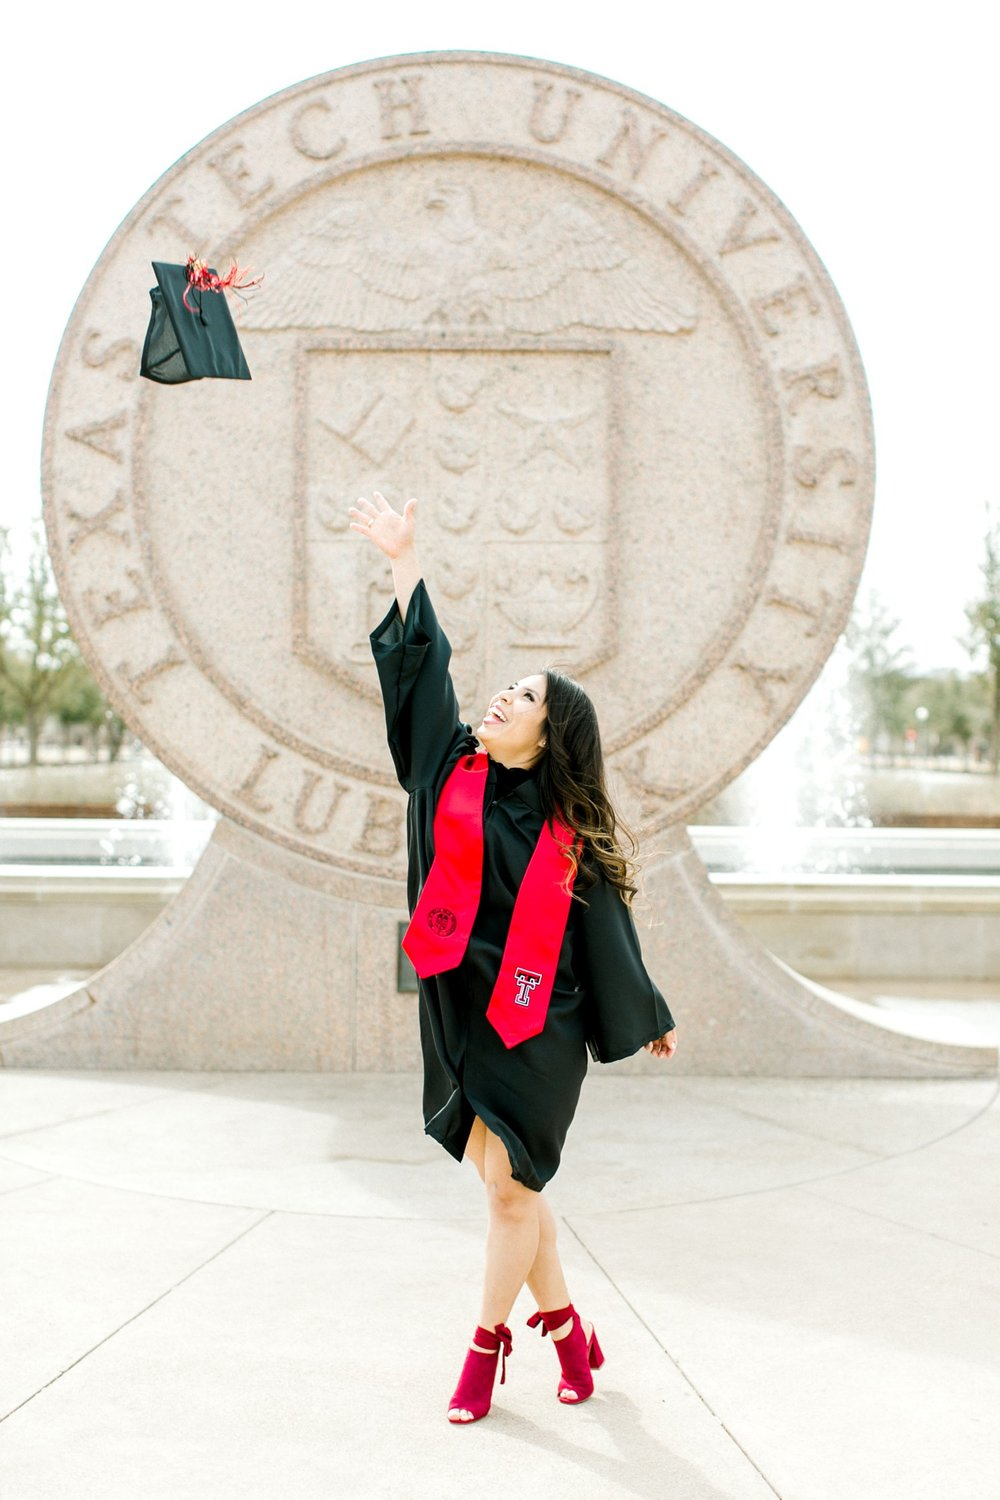 Desirae-morales-texas-tech-university-senior-photography_0023.jpg